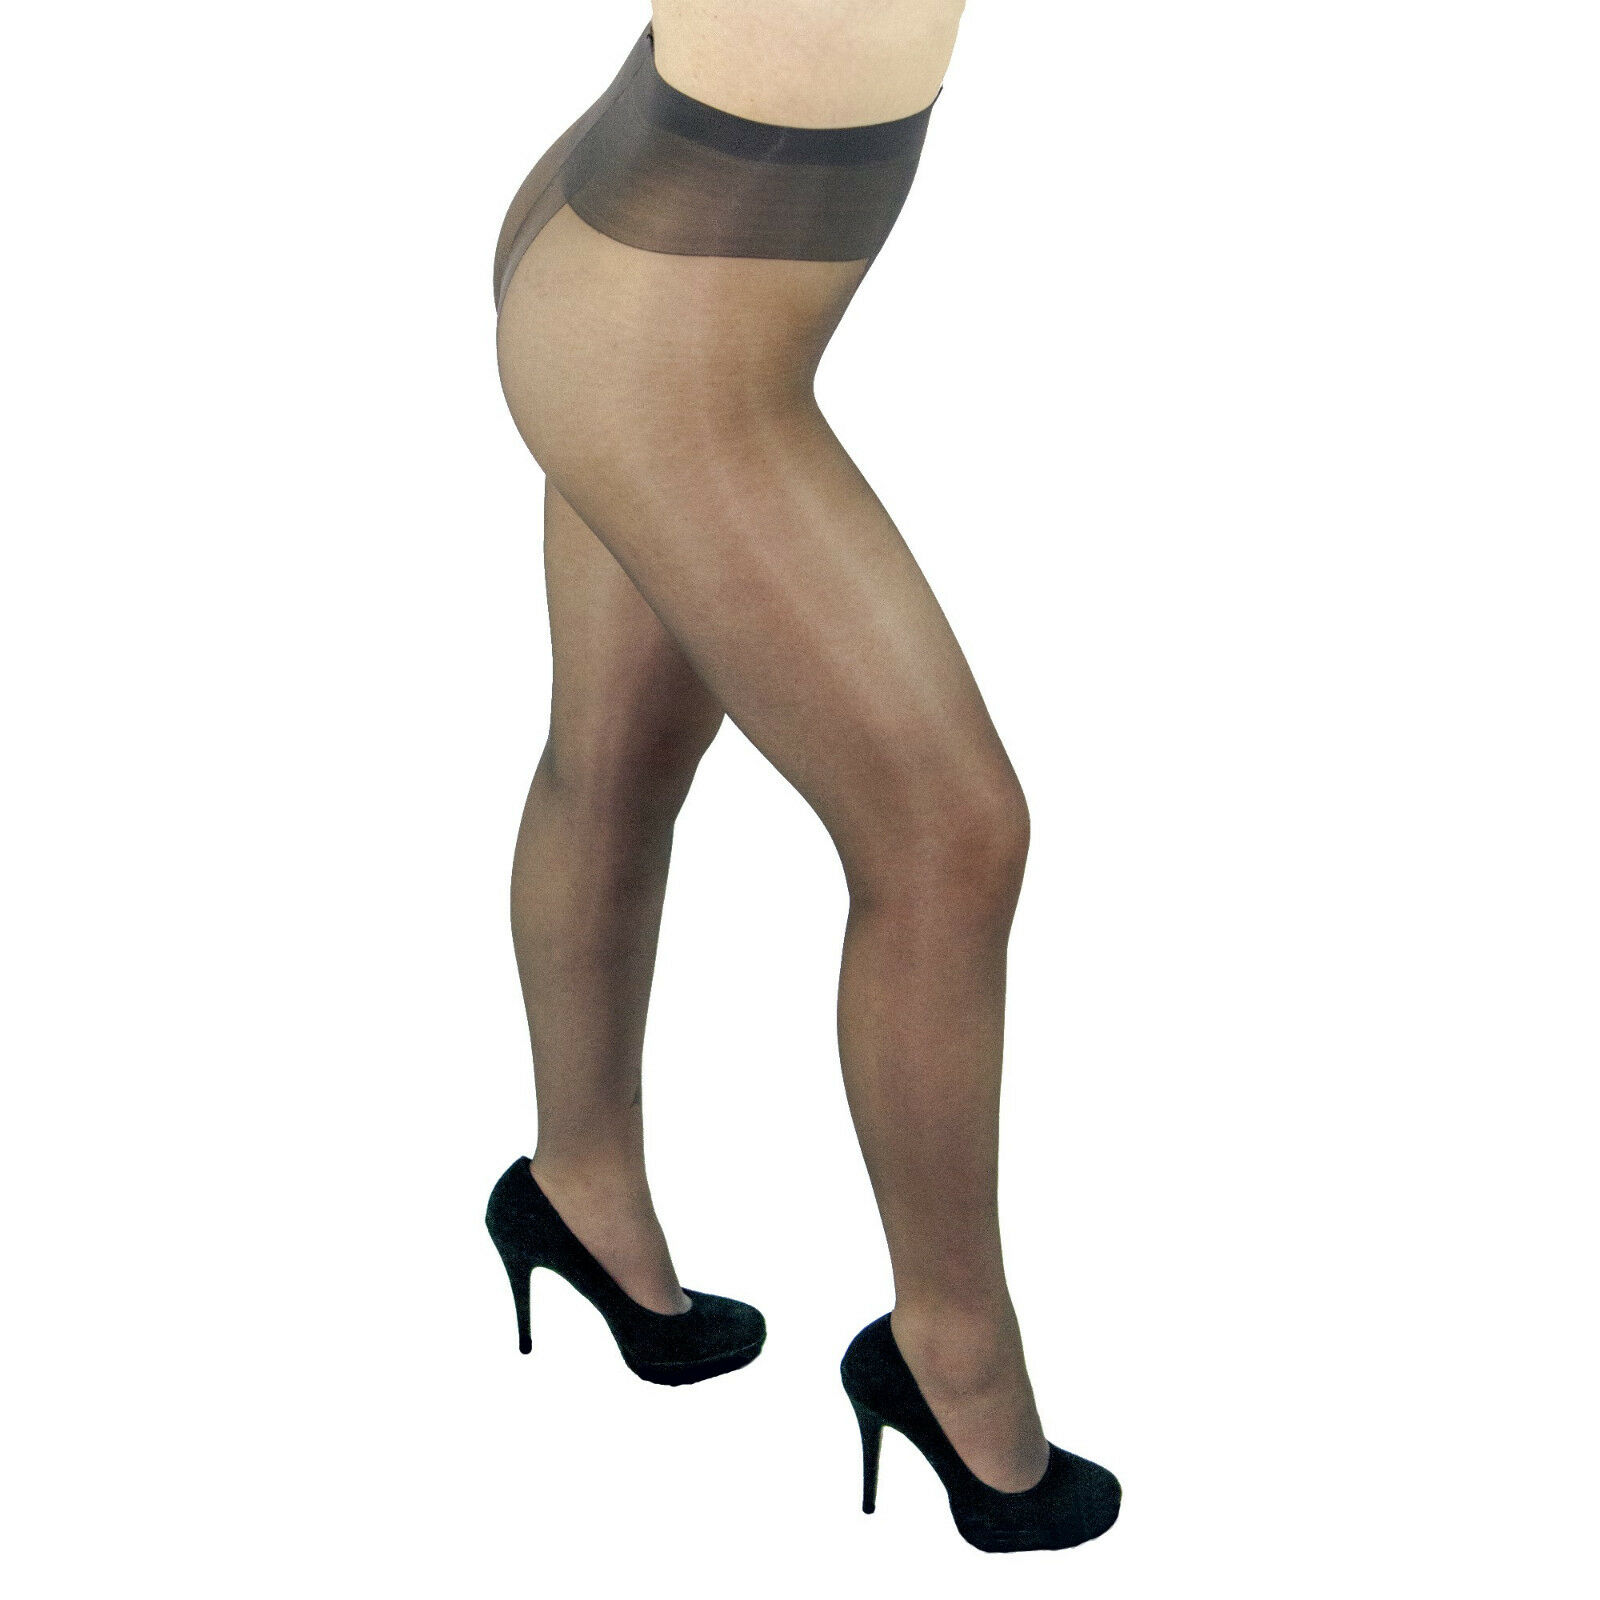 Leggs pantyhose discounted